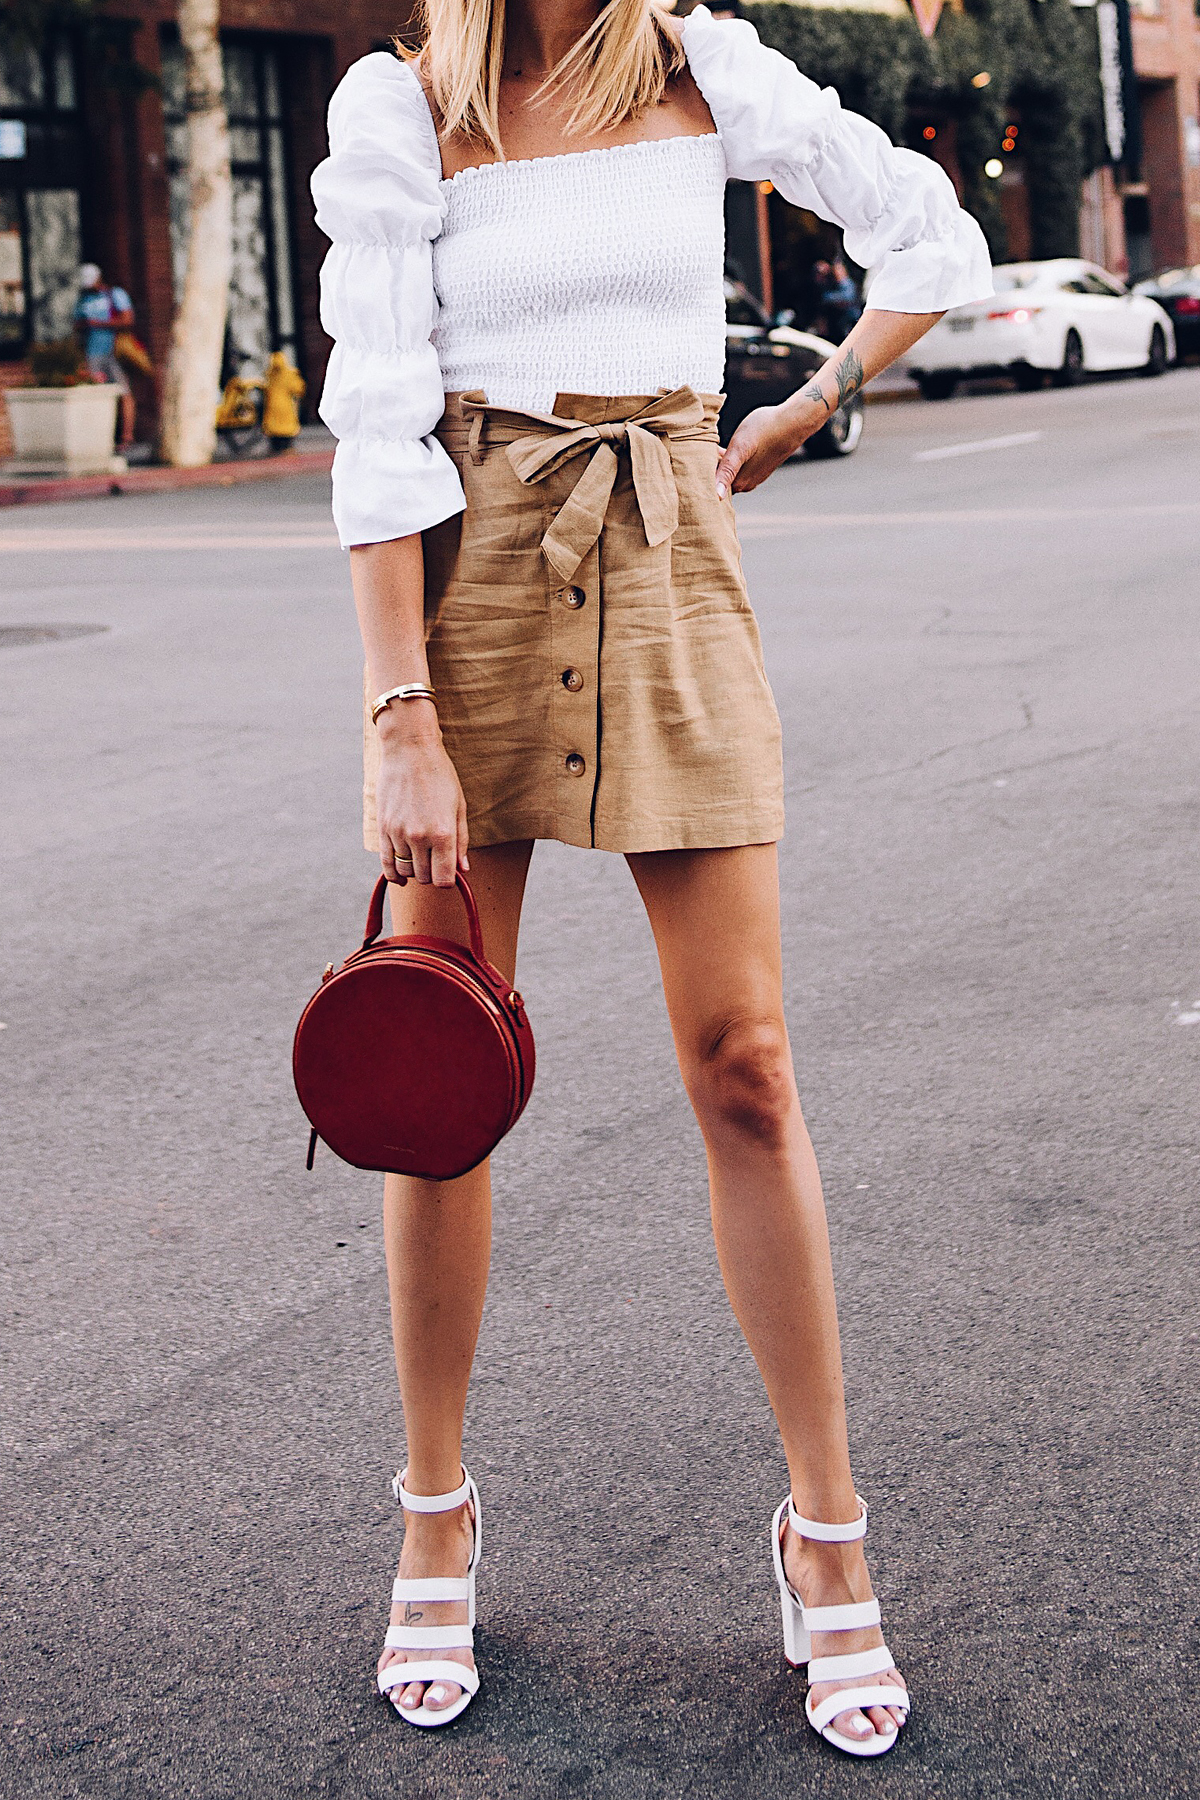 Woman Wearing Reformation White Smocked Blouse Topshop Khaki Button Front Skirt White Triple Strap Heeled Sandals Mansur Gavriel Tan Circle Handbag Fashion Jackson San Diego Blogger Fashion Blogger Street Style